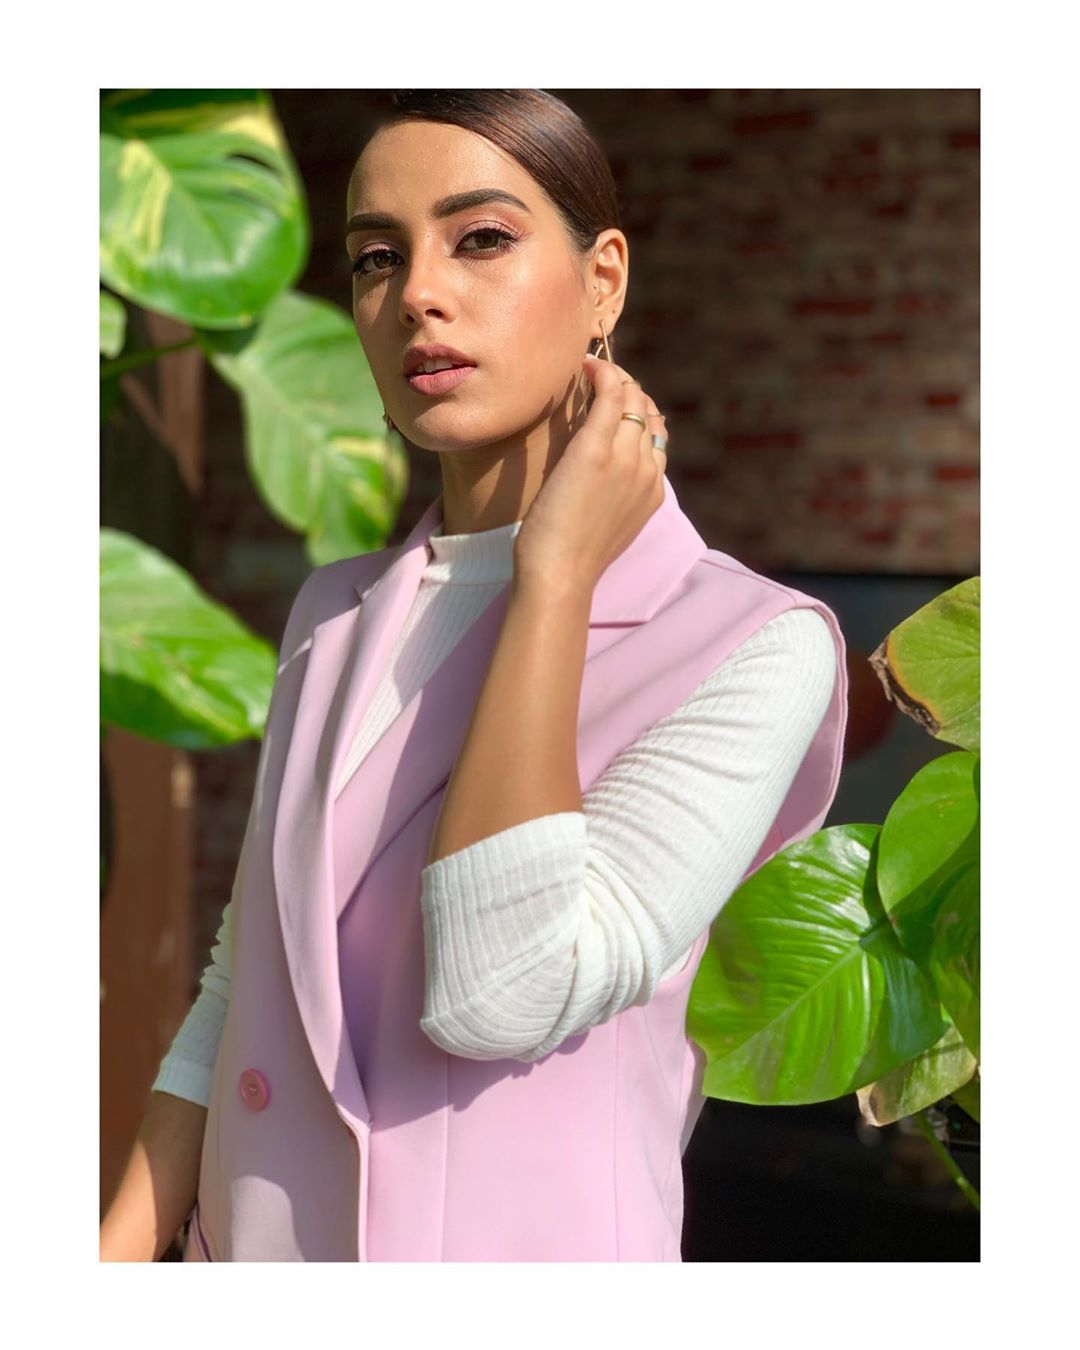 New Awesome Pictures of Actress Iqra Aziz